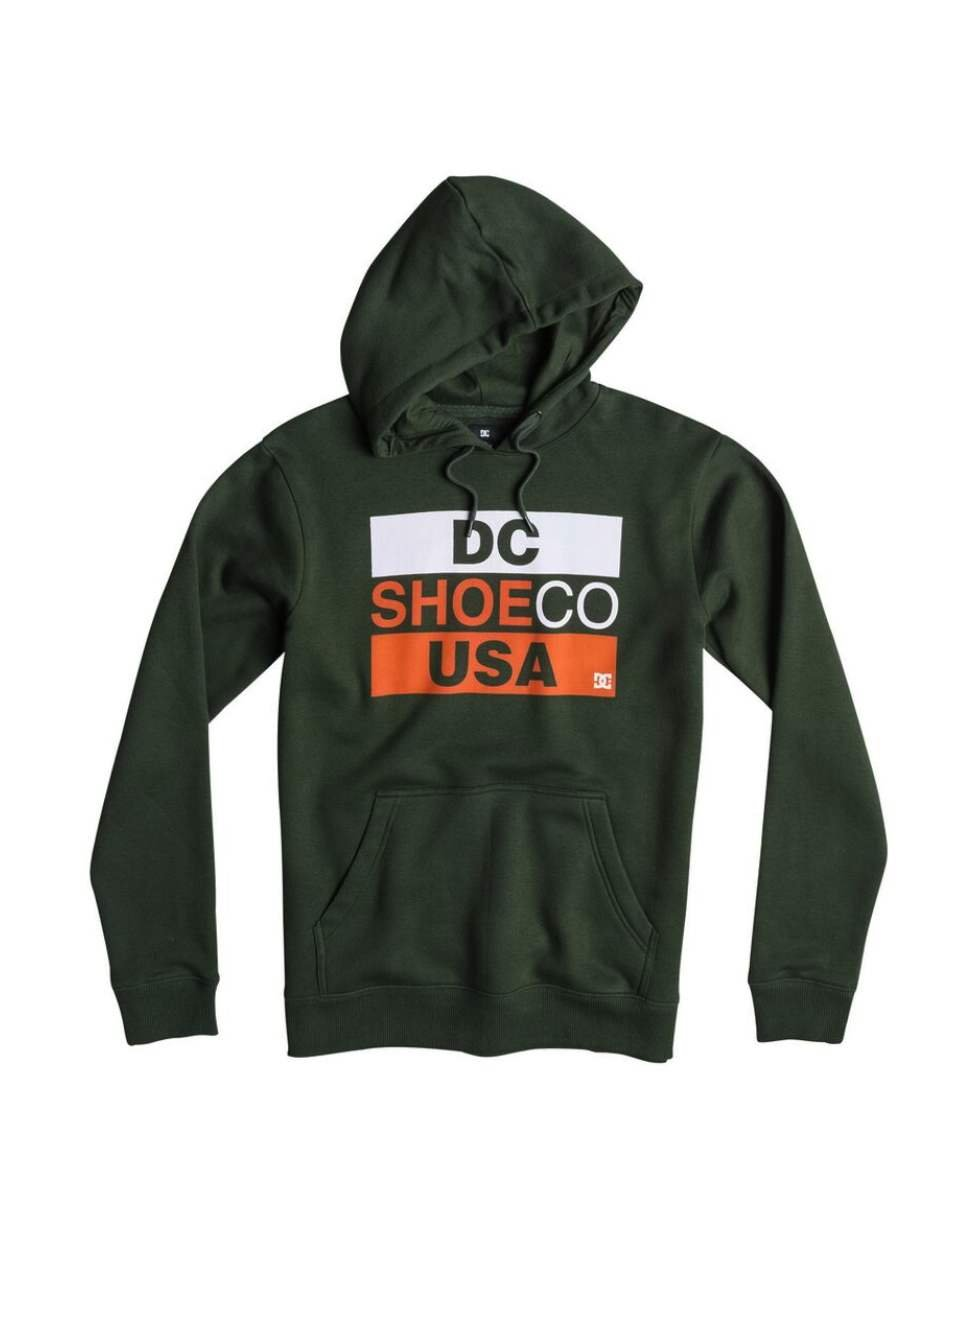 DC SHOES SWEAT THIRD BOX - LM BOARD STORE